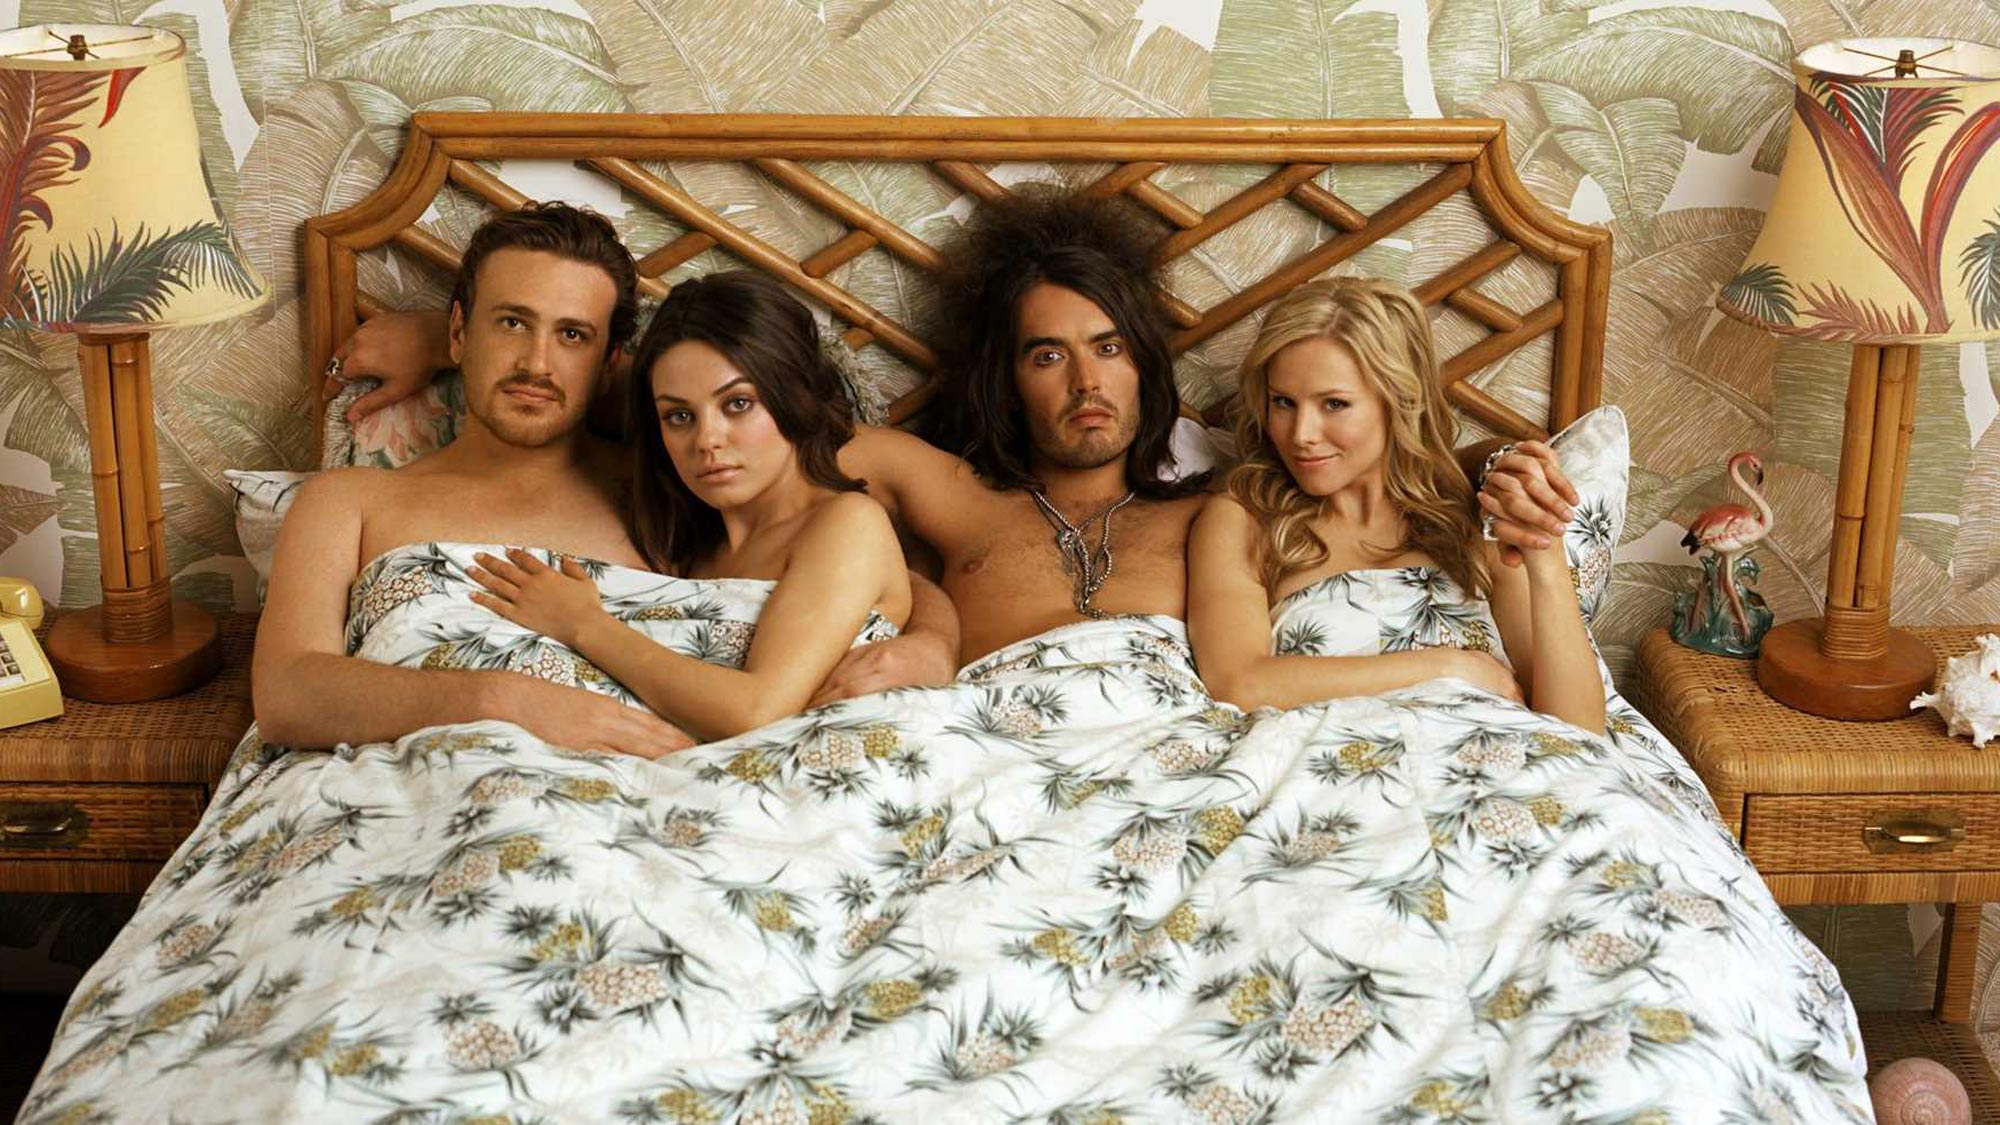 Best Peacock movies: Forgetting Sarah Marshall